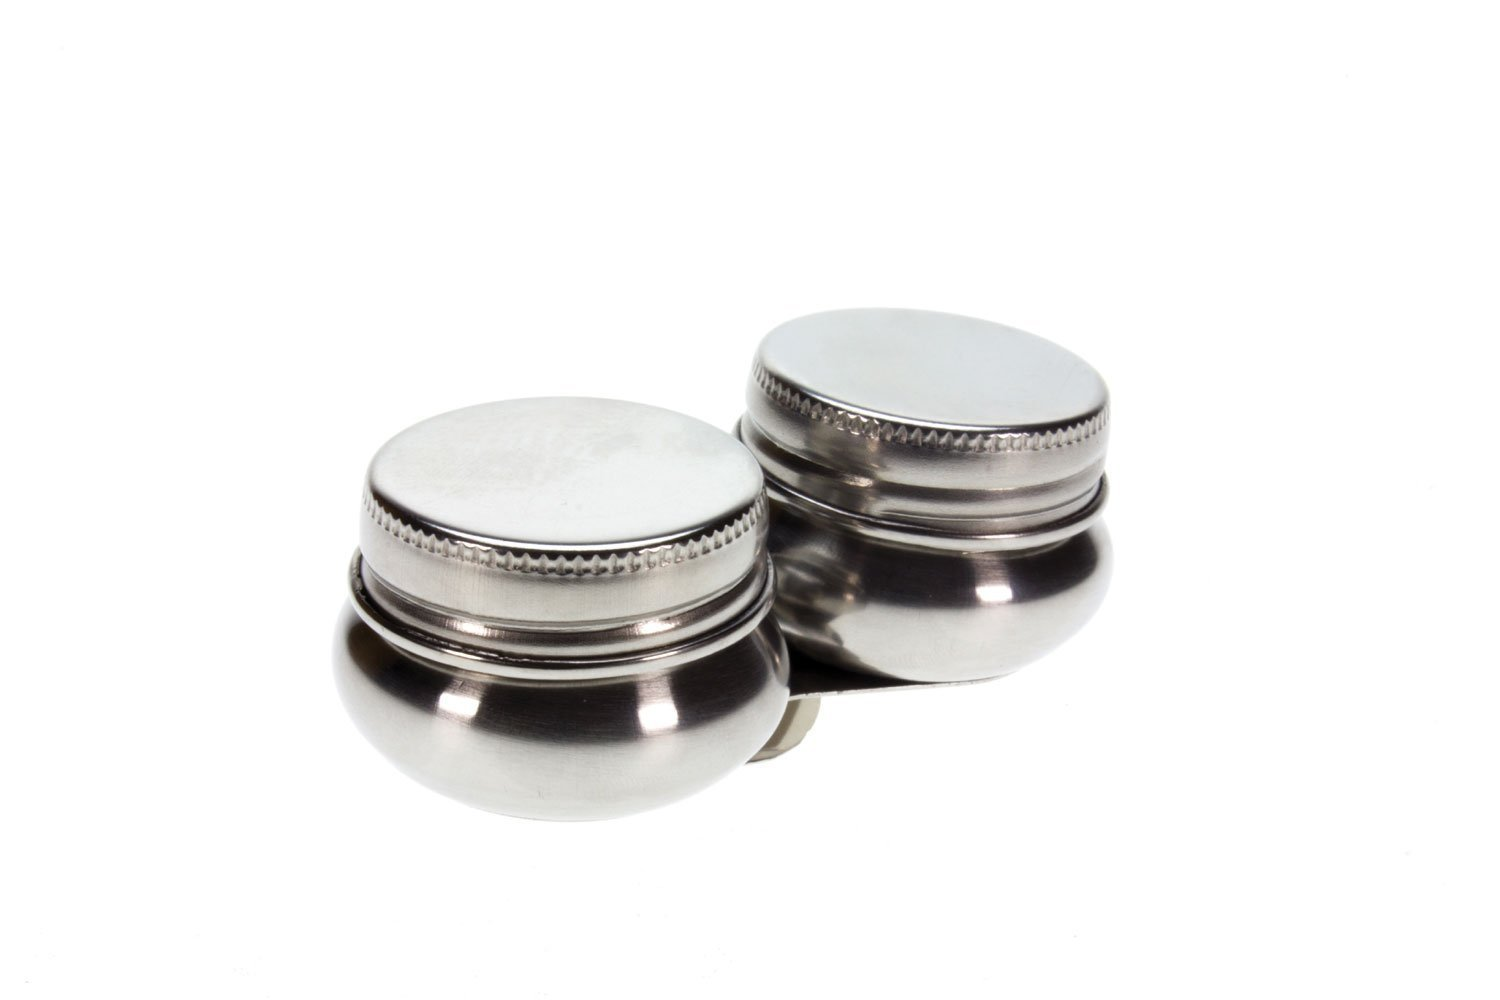 Artists Stainless Steel Double Dipper with Lid for Oil Painting The Art Shop Skipton